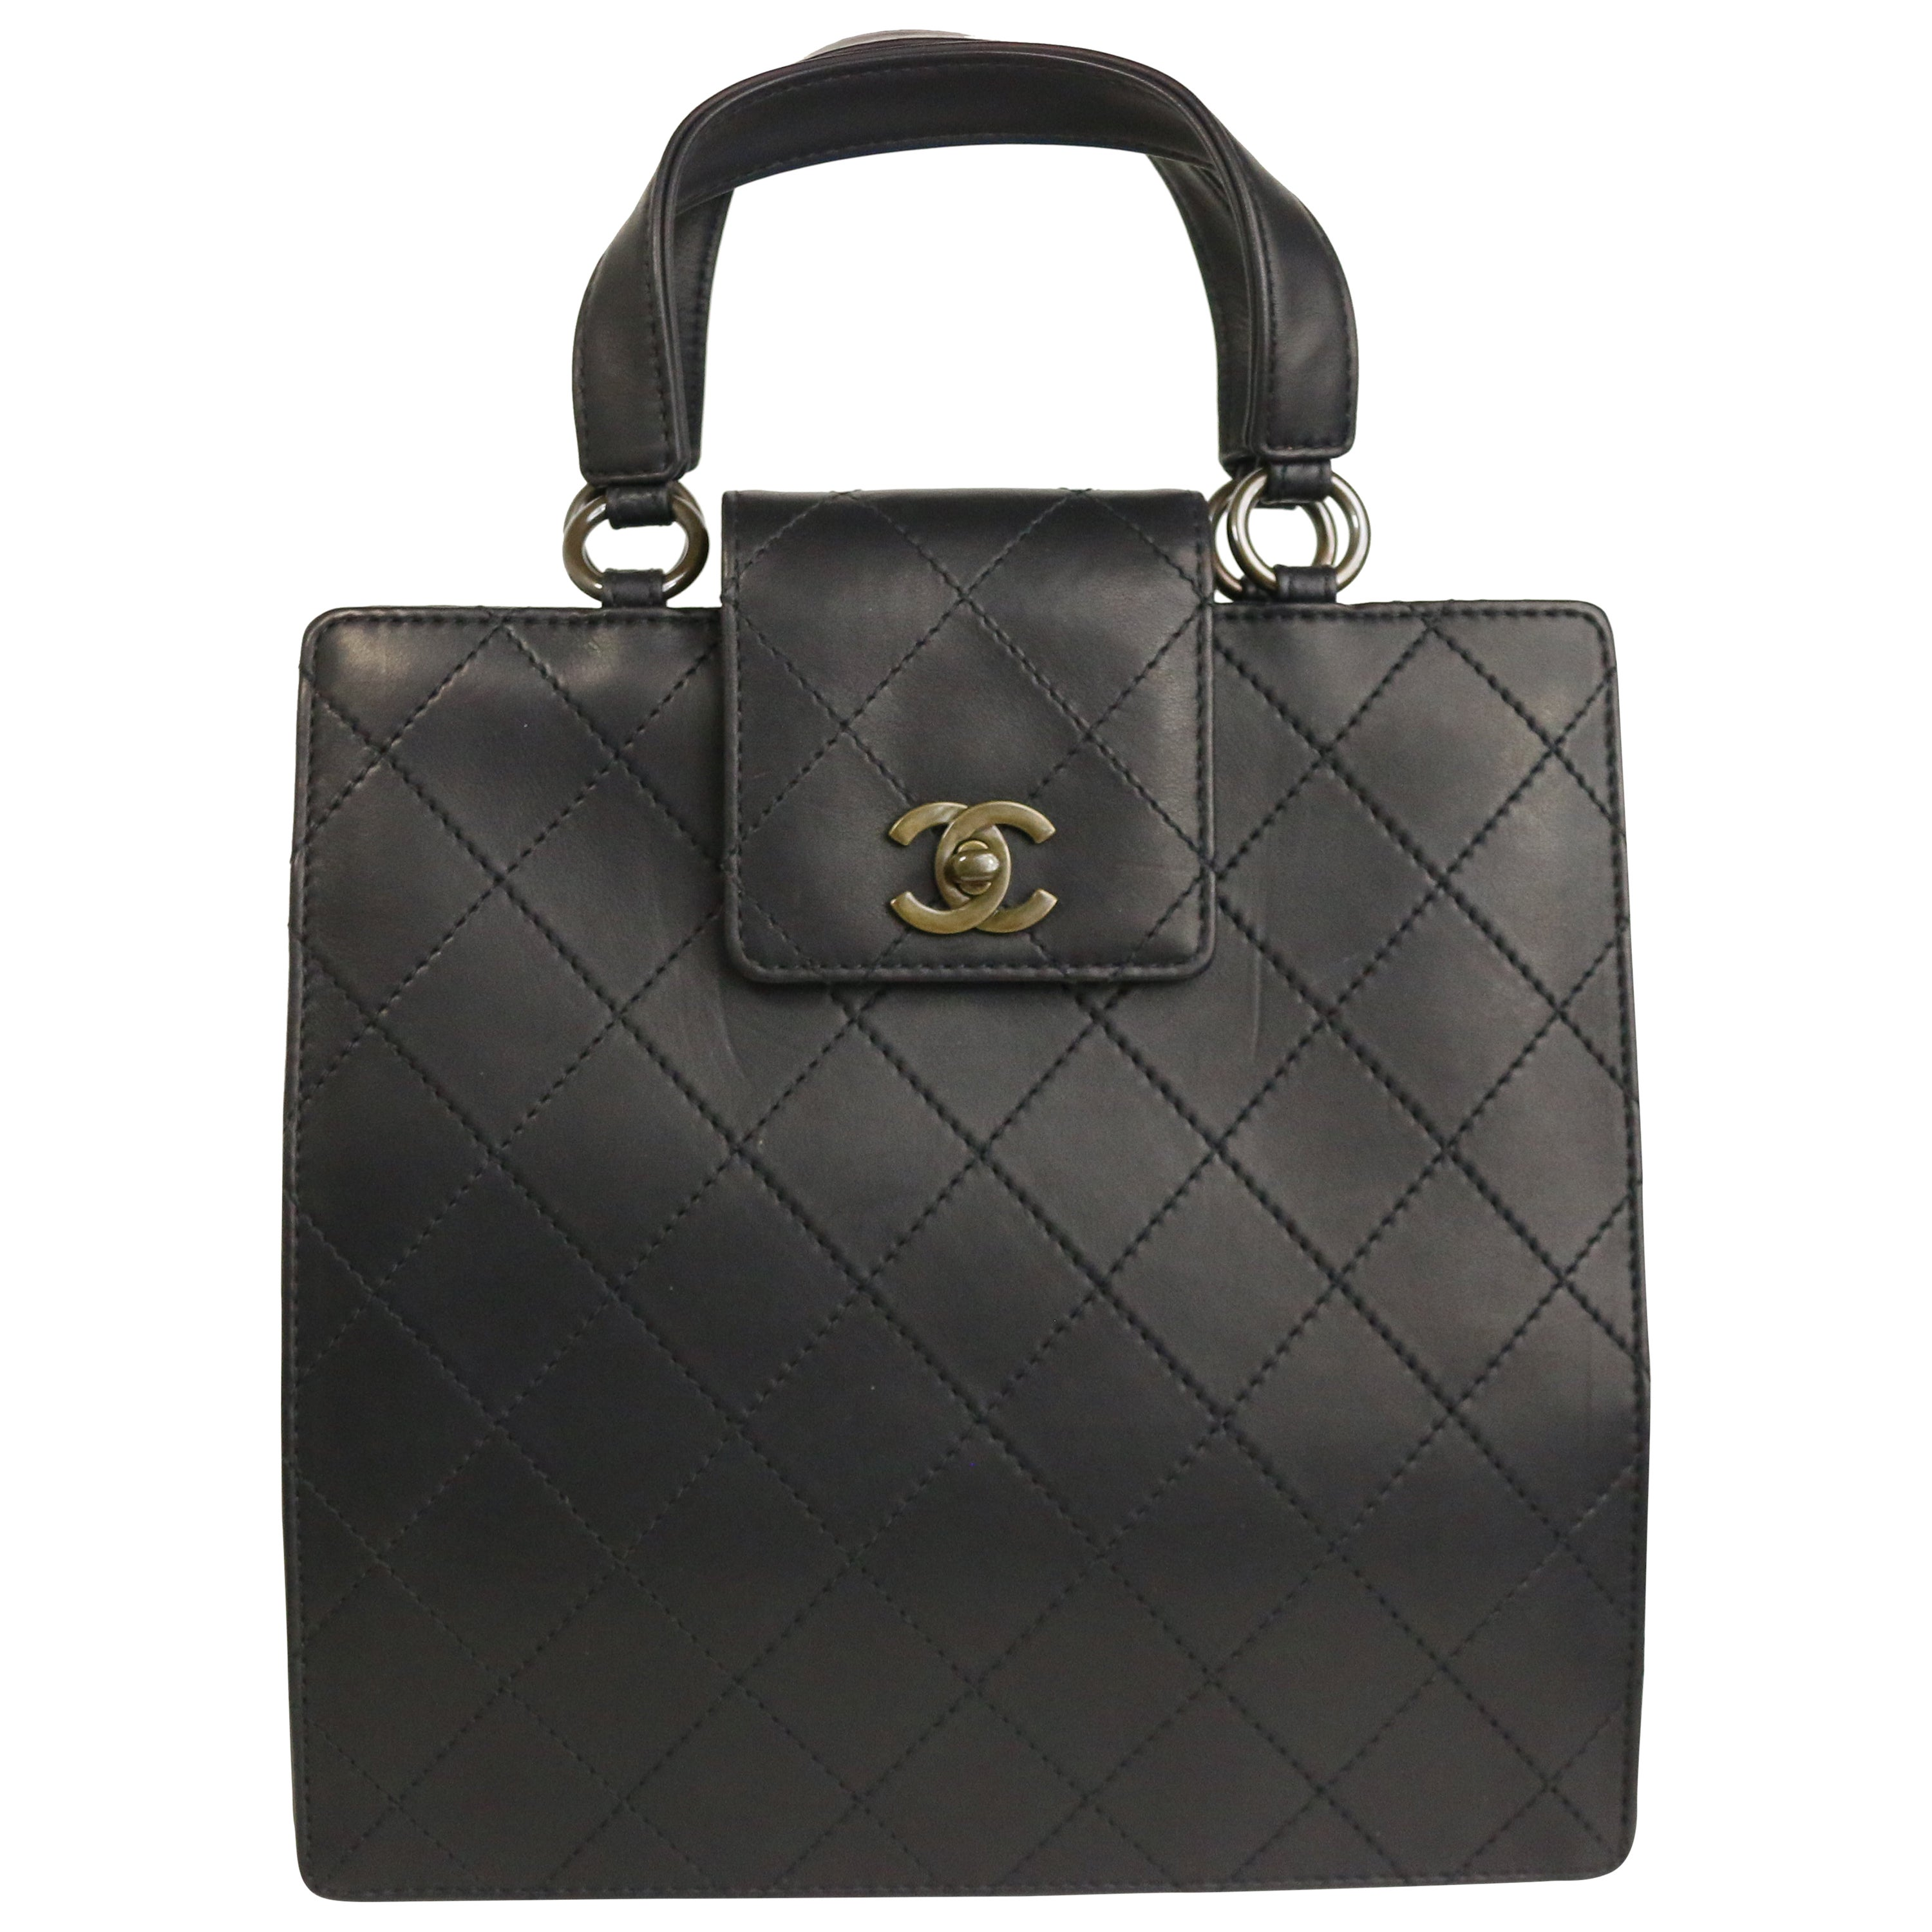 Chanel Black Cow Leather Handle Bag